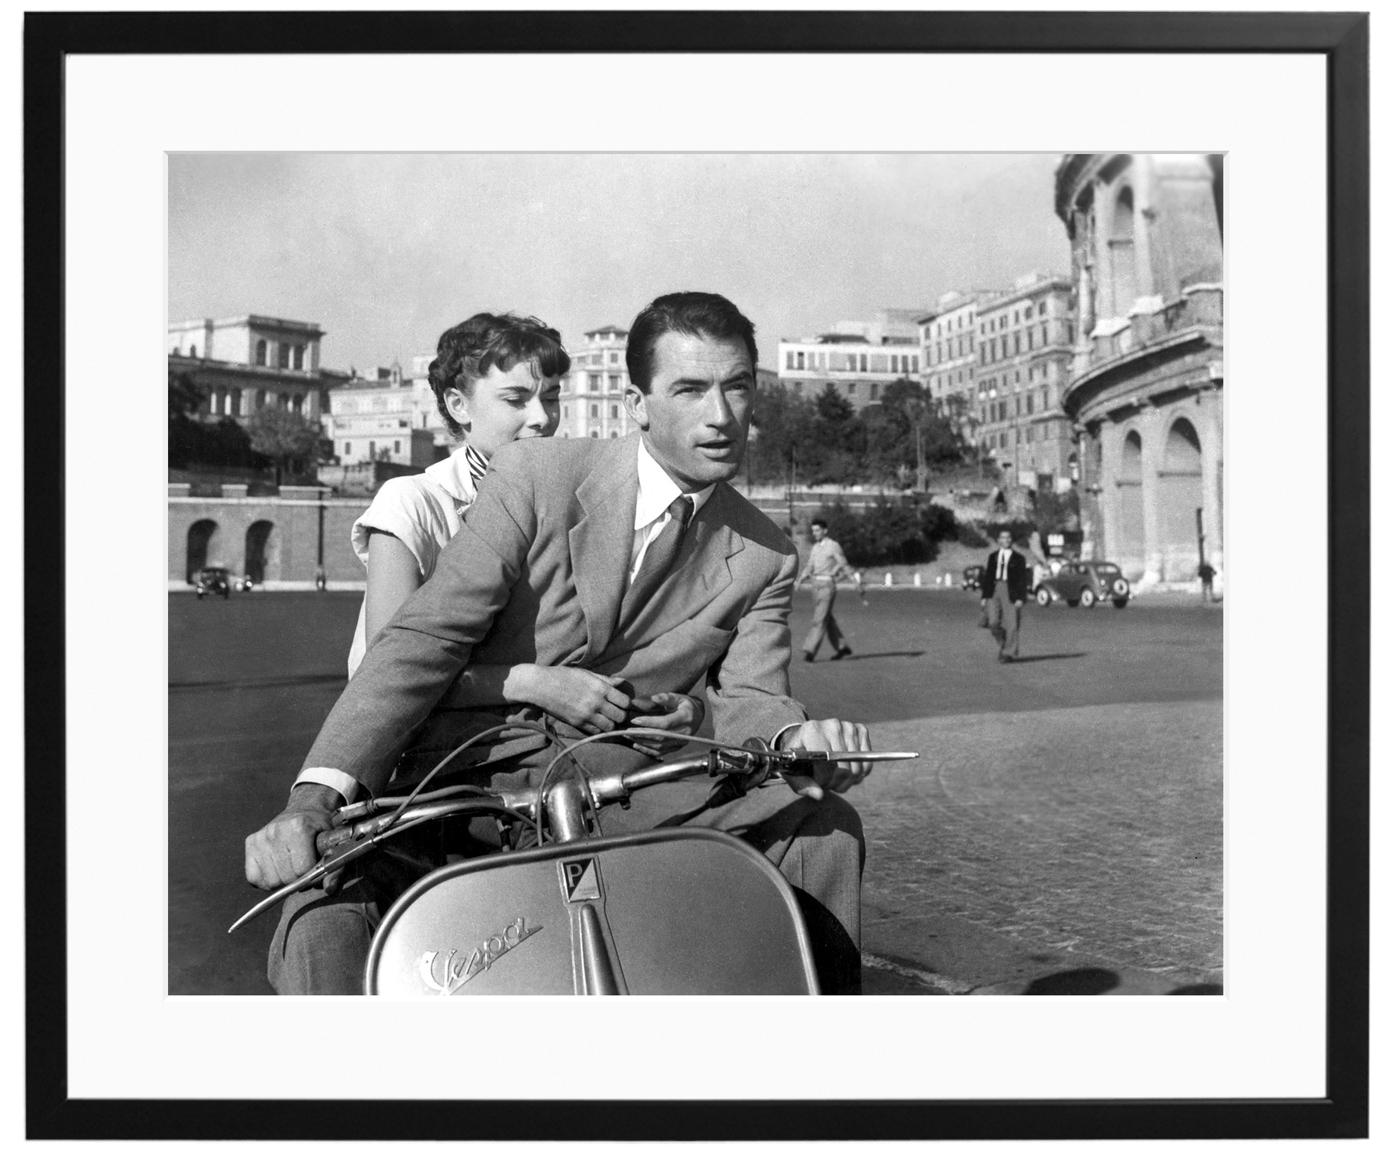 Gerahmter Fotodruck Roman Holiday with Peck and Hepburn, Bild: Fuji Crystal Archive Papi, Rahmen: Holz, lackiert, Front: Plexiglas, Bild: Schwarz, Weiß Rahmen: Schwarz, 50 x 40 cm